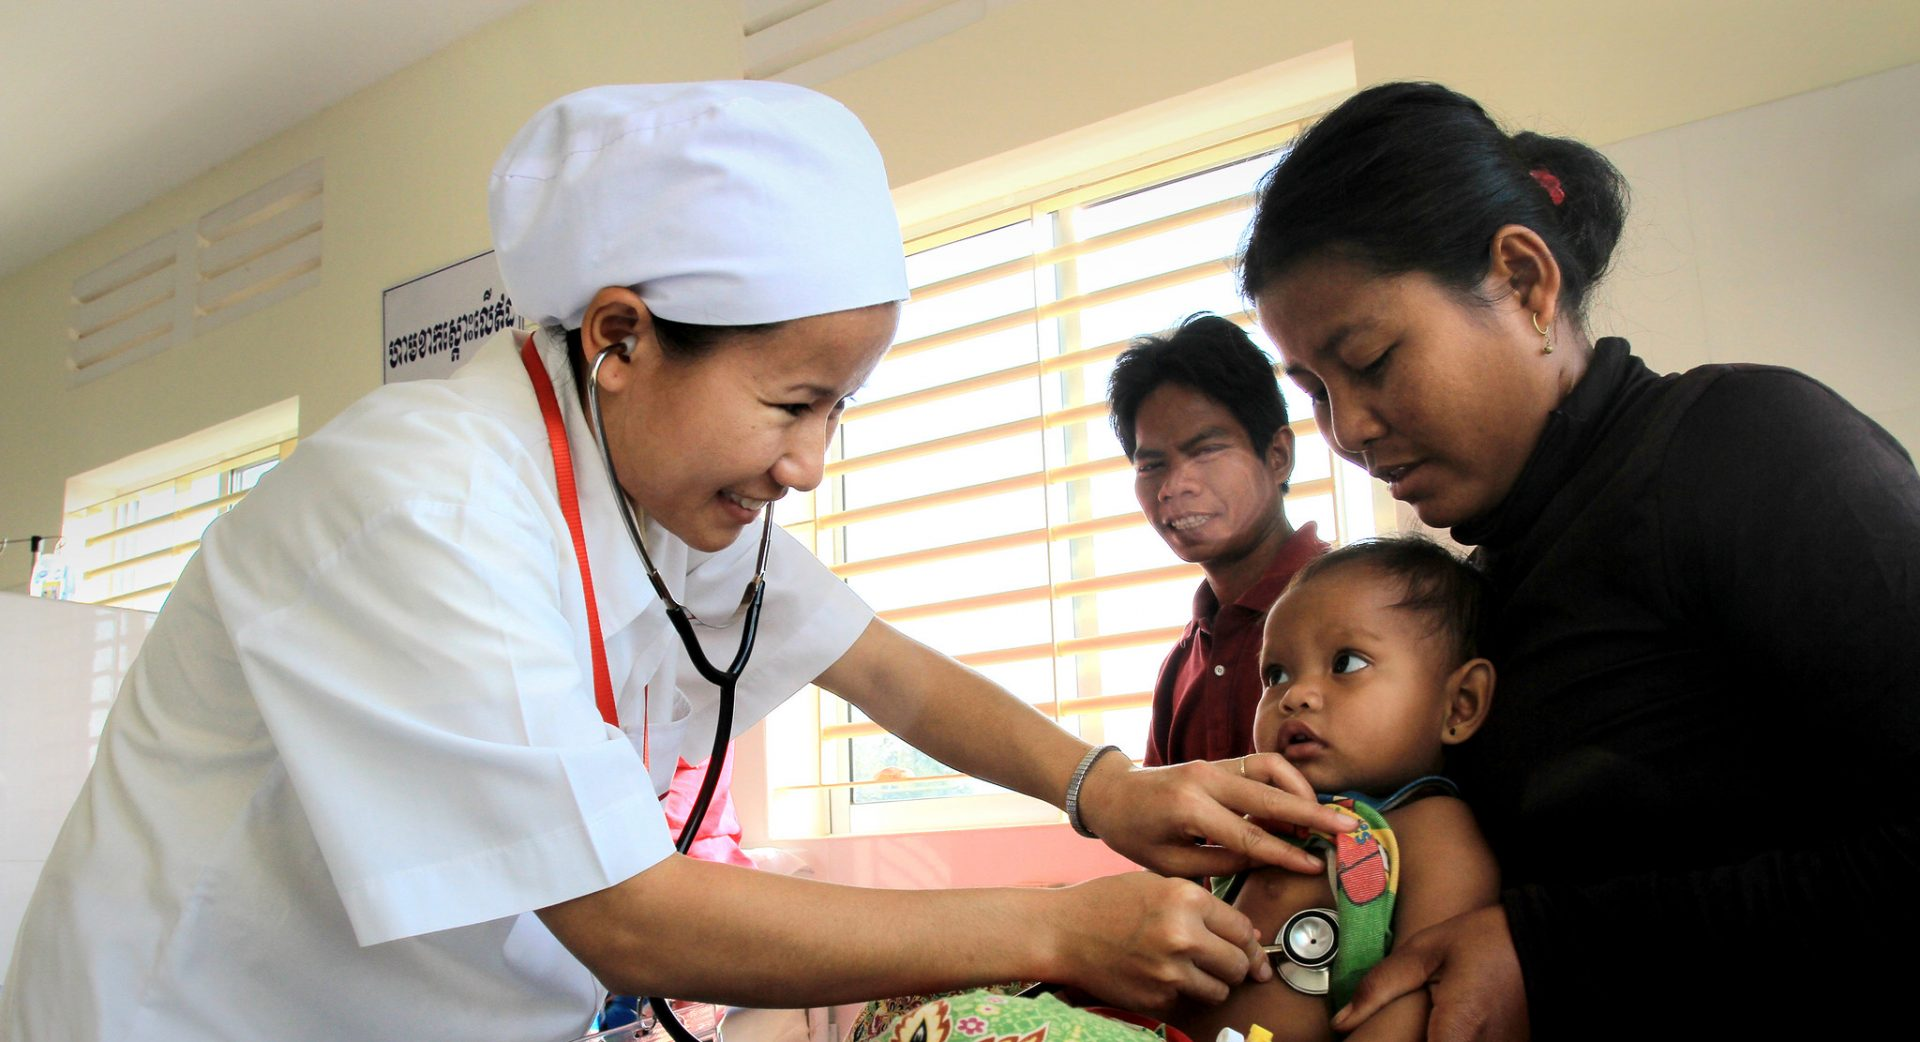 A trained medical staff listens to the hearbeat of an infant at 16 Makara hopsital in Preah Vihear, Cambodia.